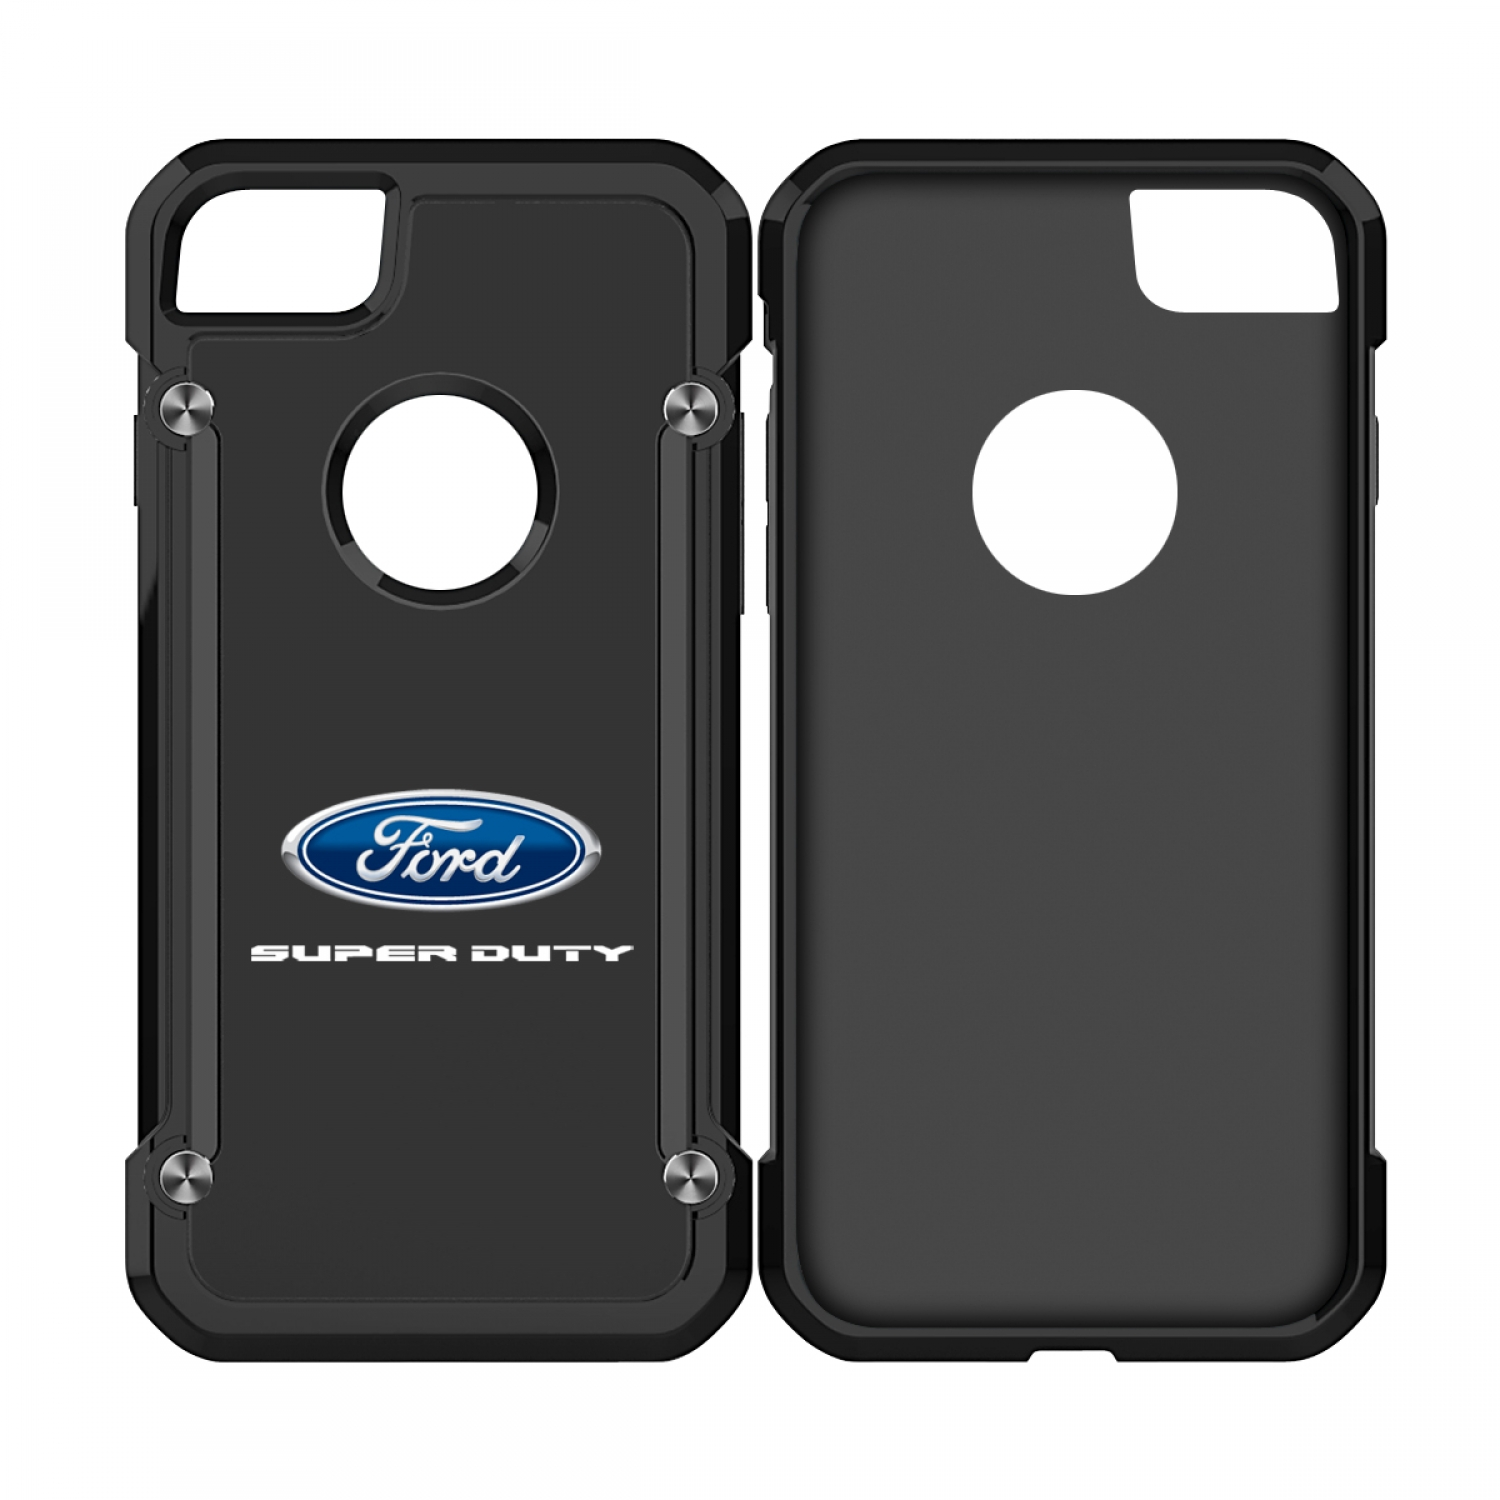 Ford Super Duty iPhone 7 iPhone 8 TPU Shockproof Black Cell Phone Case